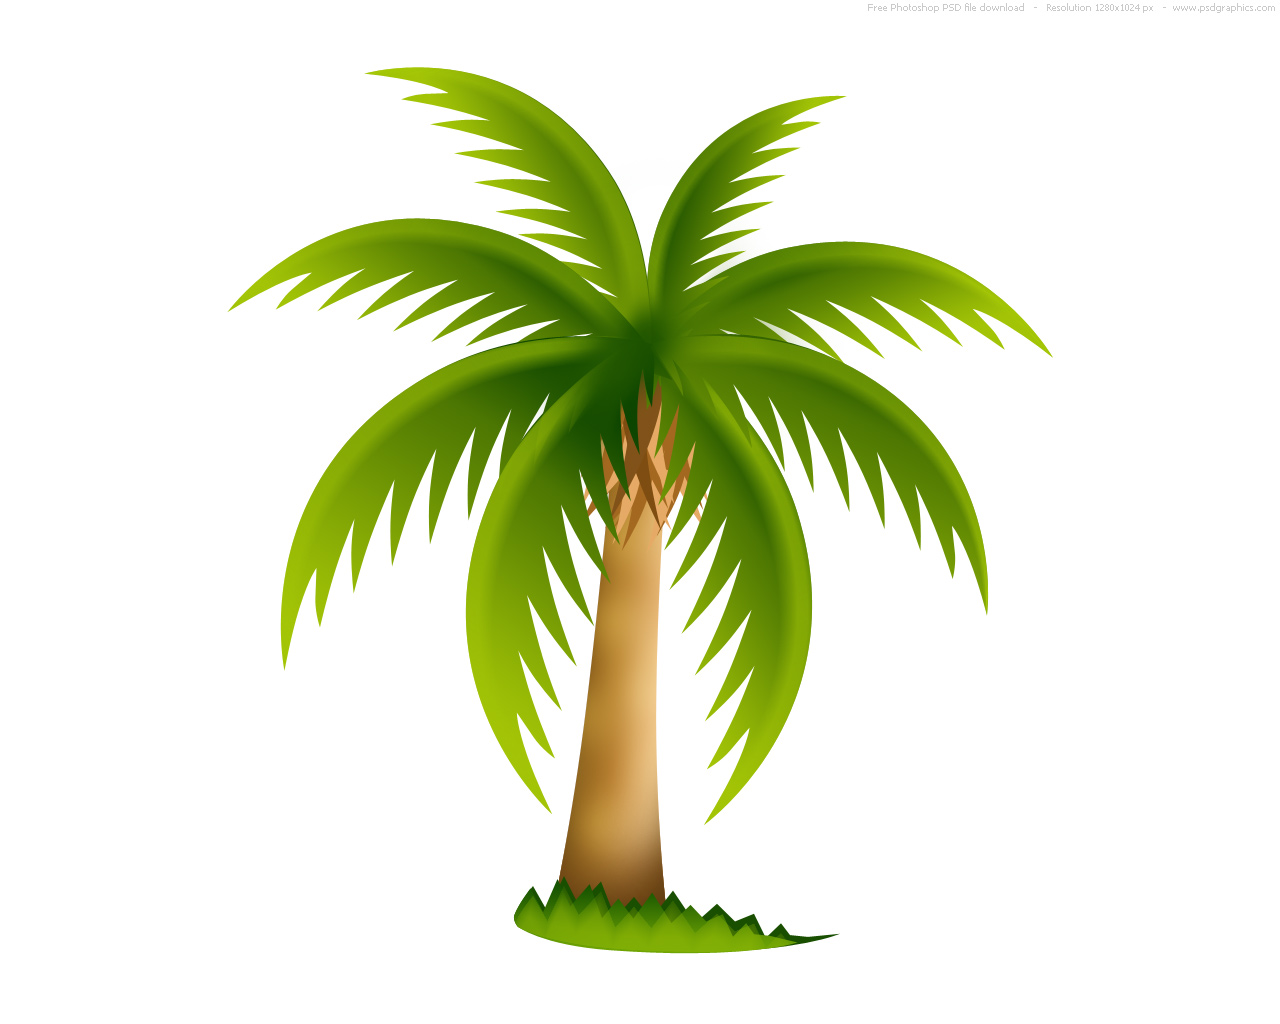 Tree Clipart | Palm Tree Image - Vector -Tree Clipart | Palm Tree image - vector clip art online, royalty free u0026amp; public-16